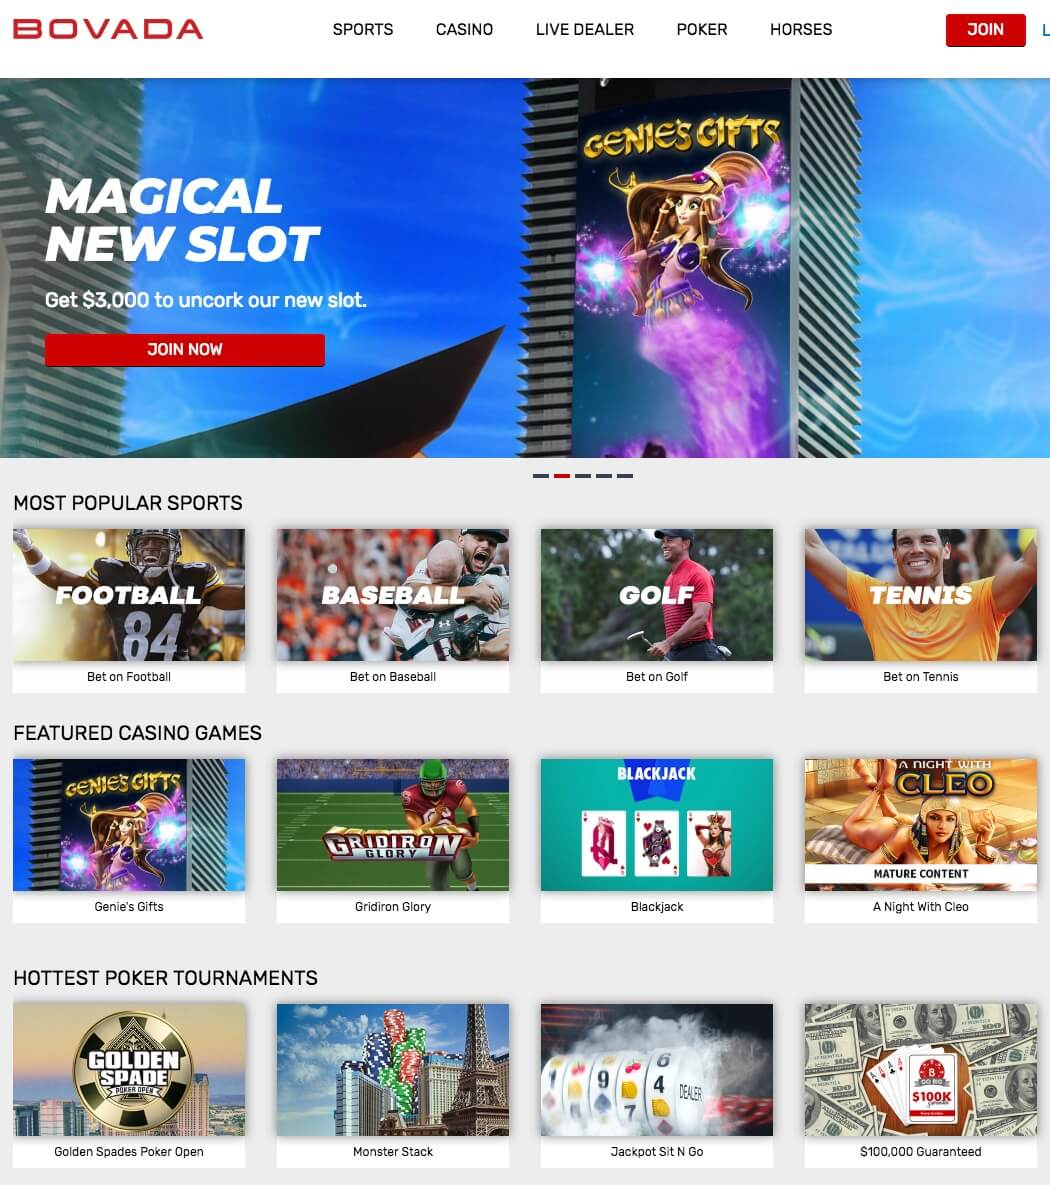 Bovada Casino Review And Bonus Free Sign Up Offer And Codes